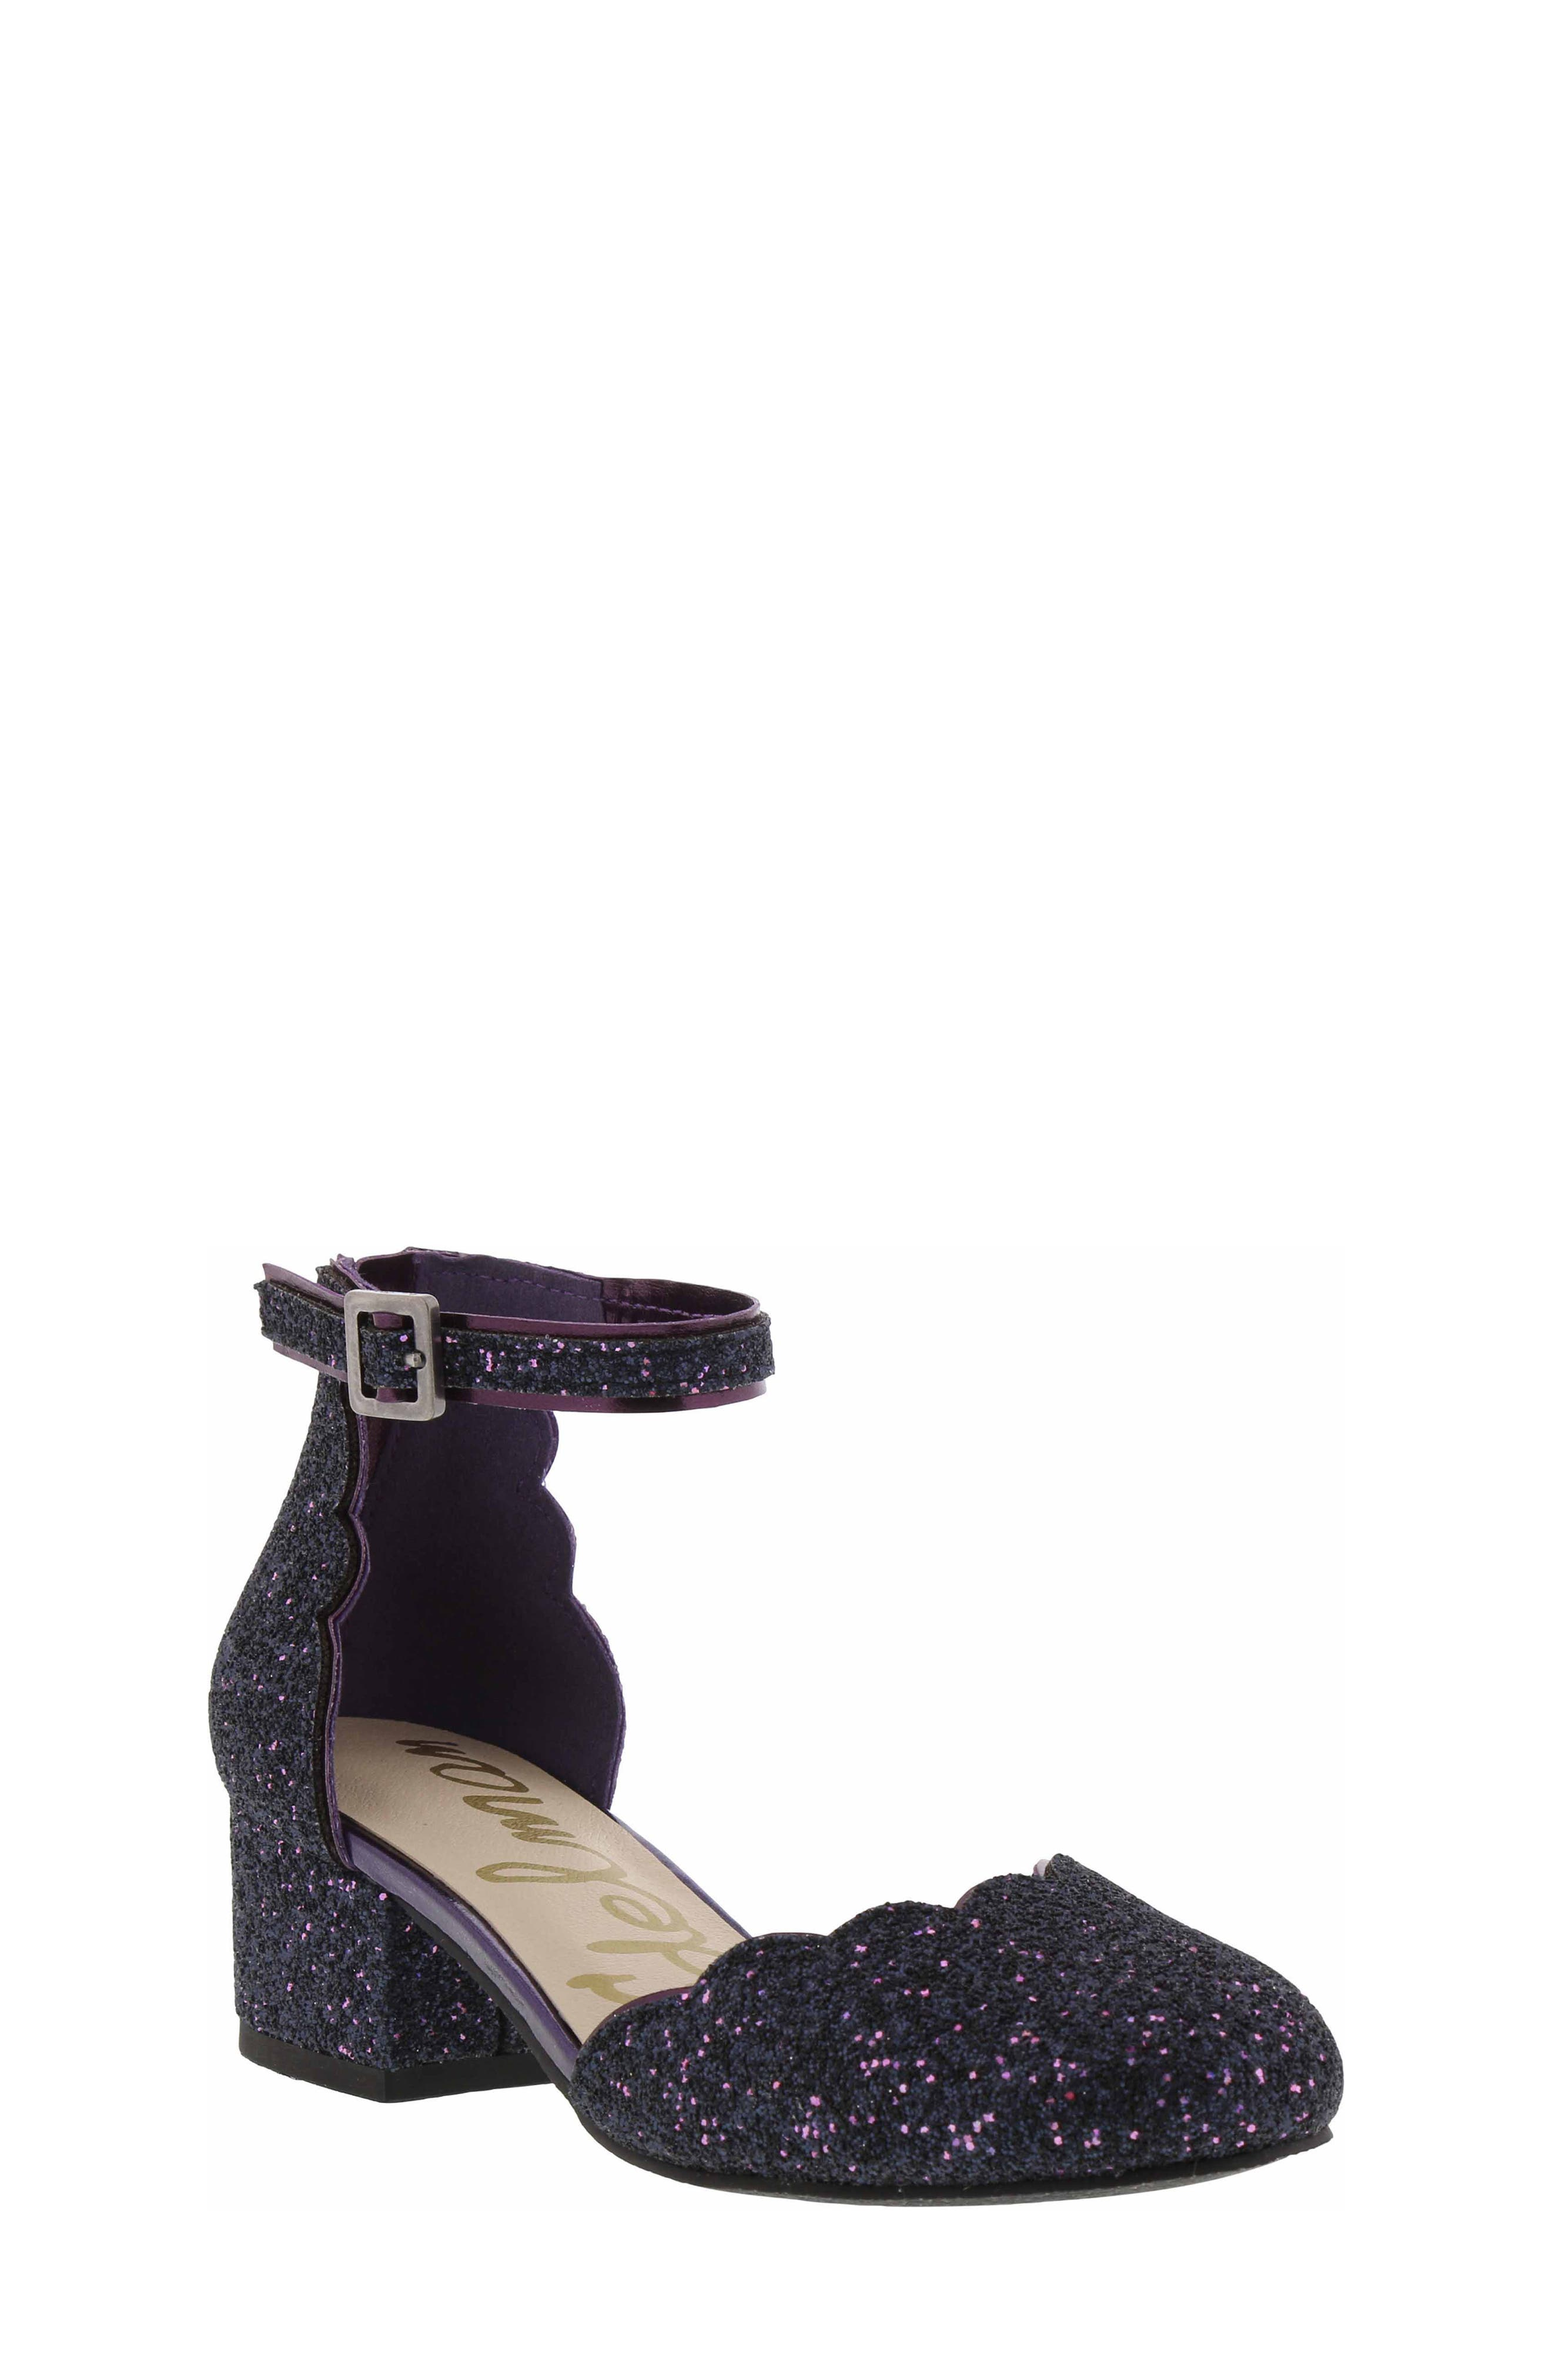 Evelyn Inara Glitter Ankle Strap Pump,                             Main thumbnail 1, color,                             PURPLE MULTI